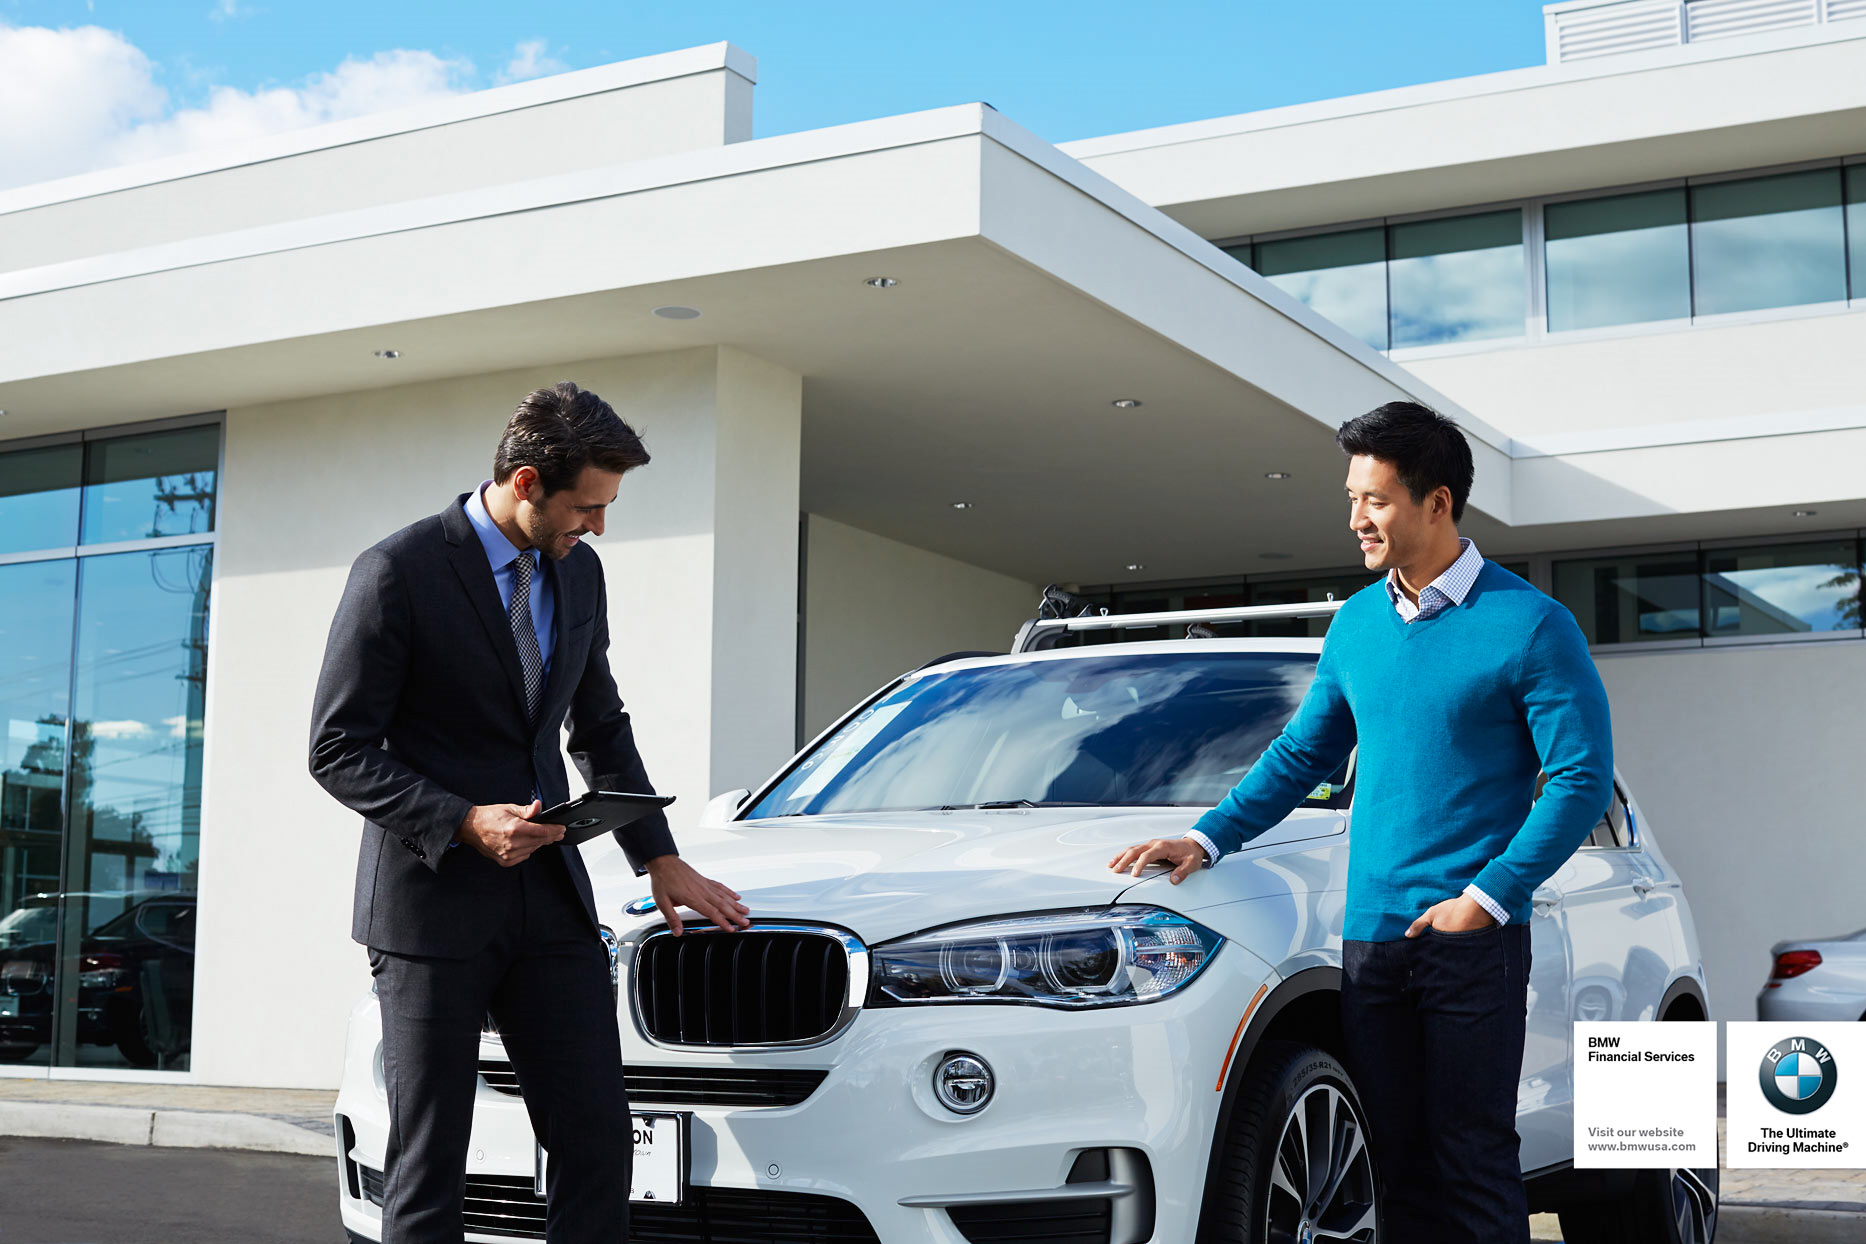 Mark DeLong - Commercial Photography - Man in blue sweater talking to a car salesman in a suit in front of a white SUV.